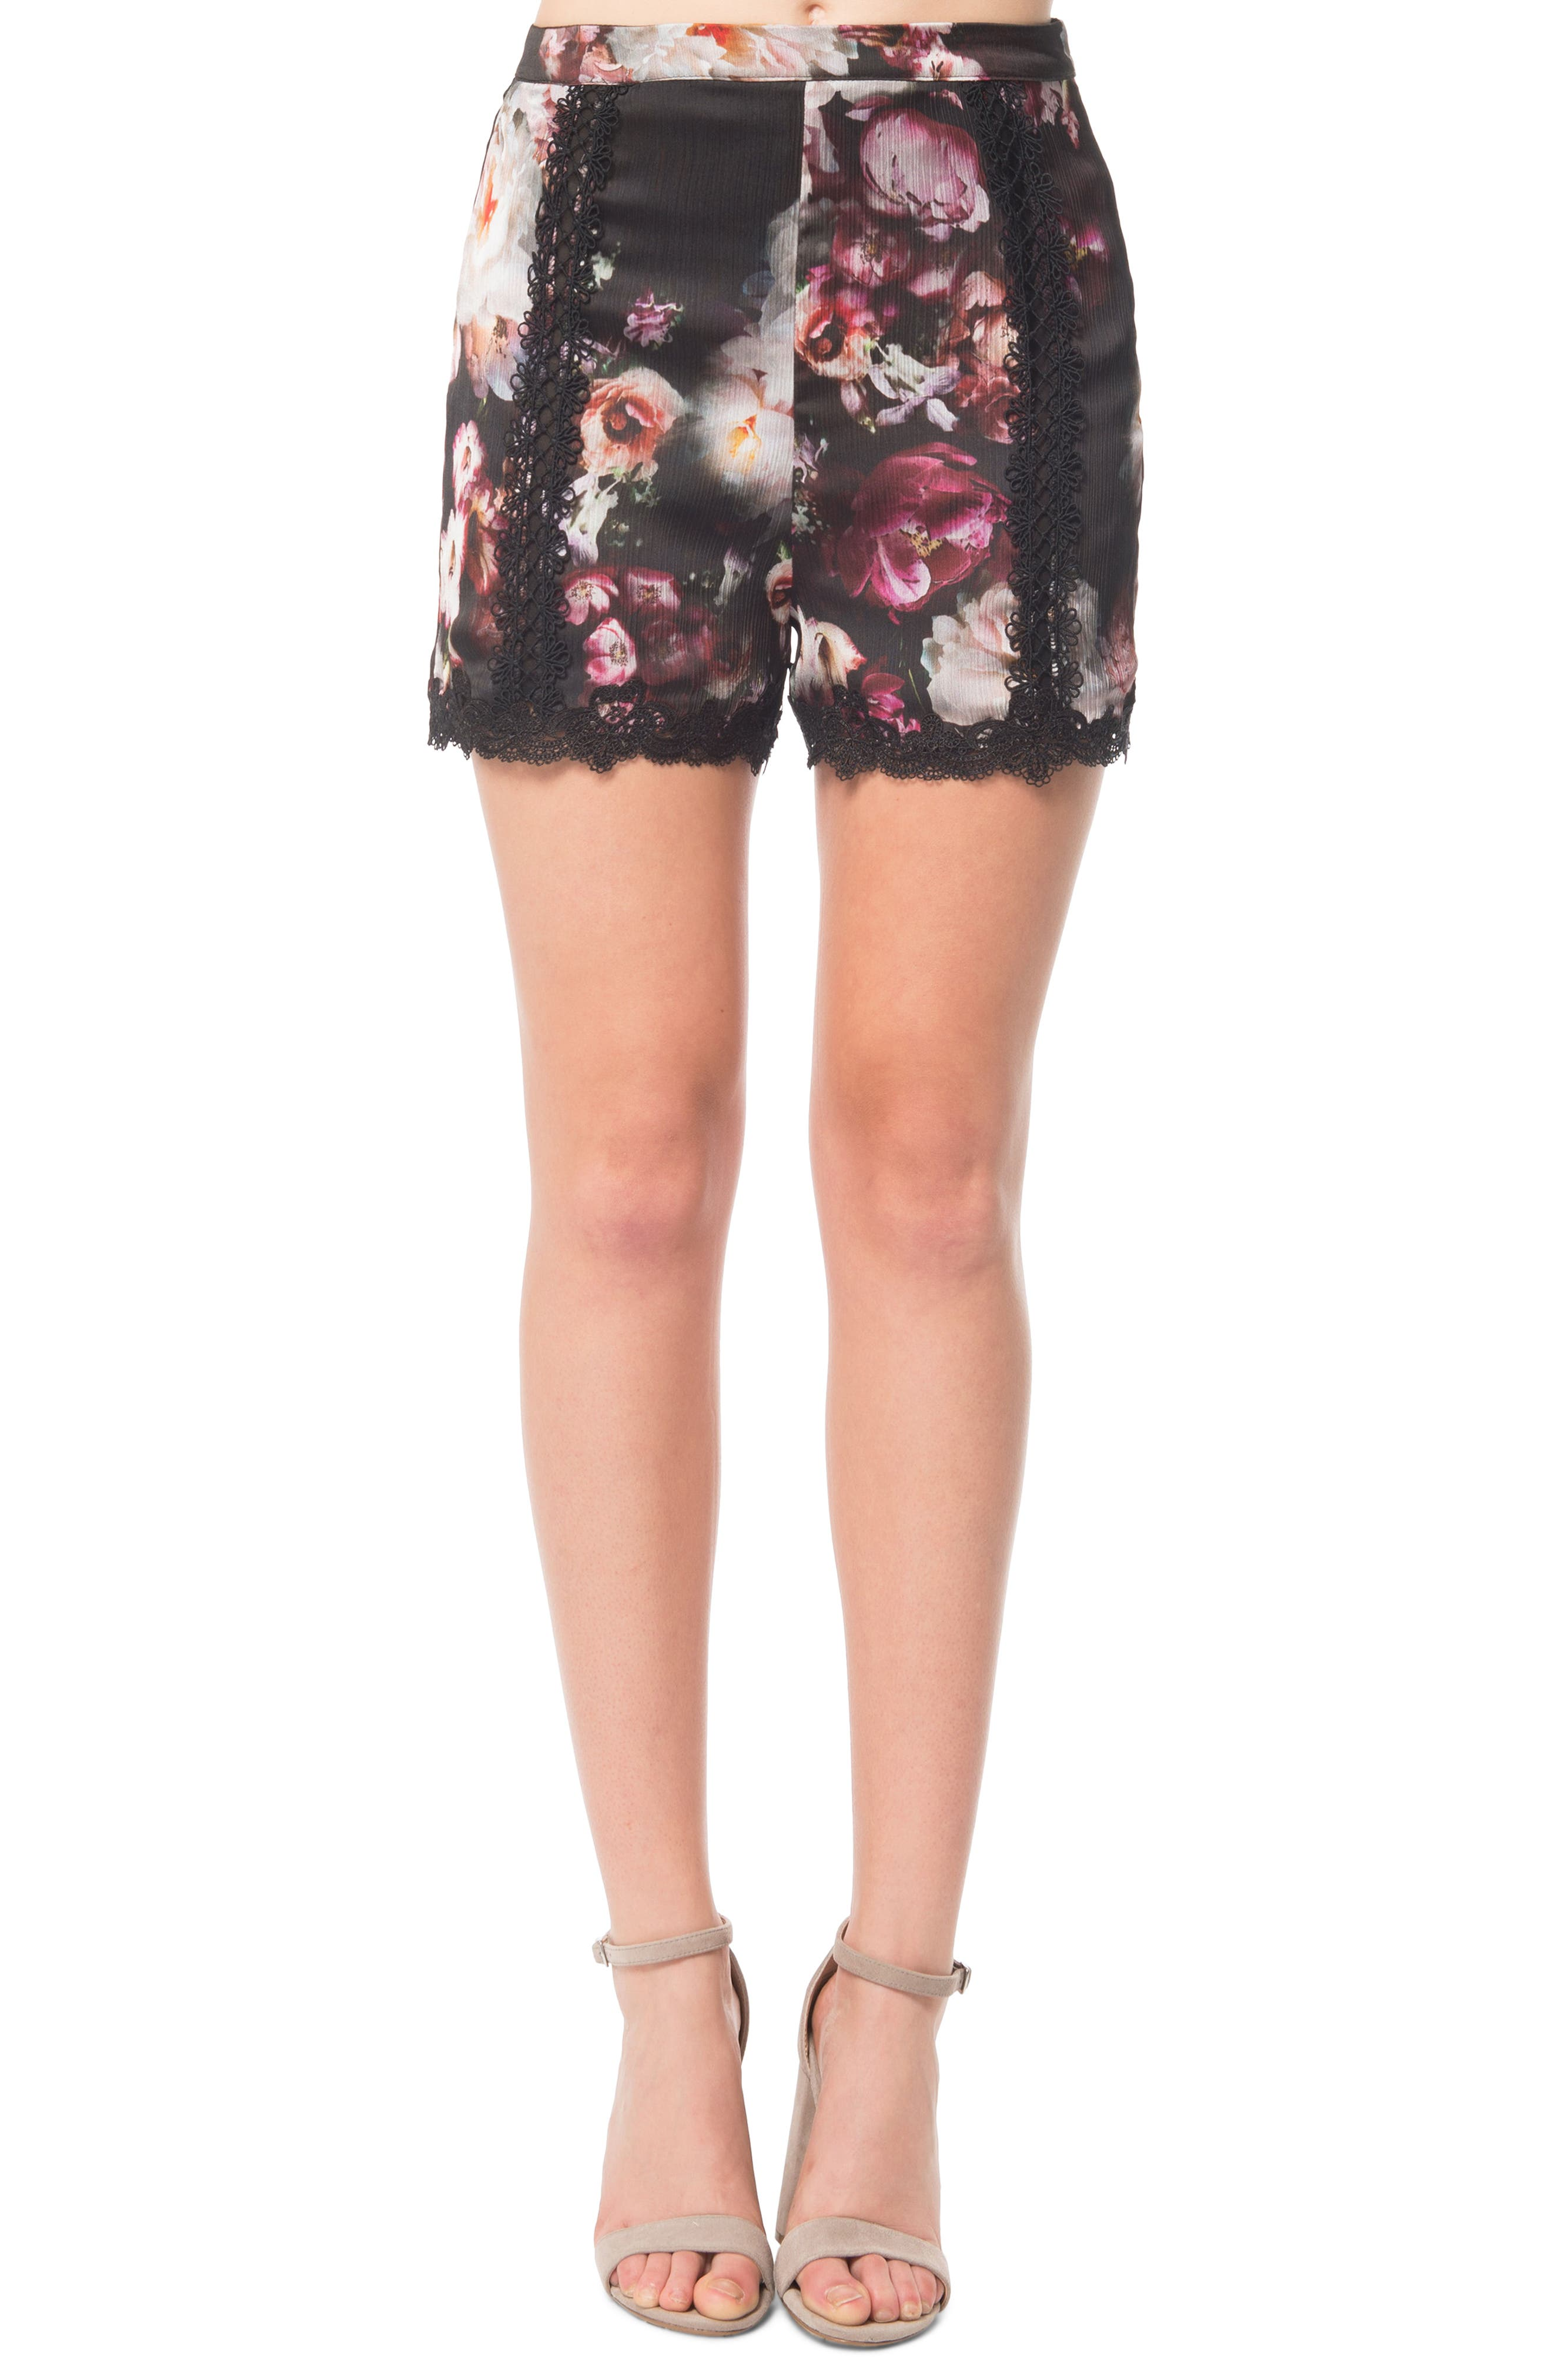 Willow & Clay Lingerie Print Shorts